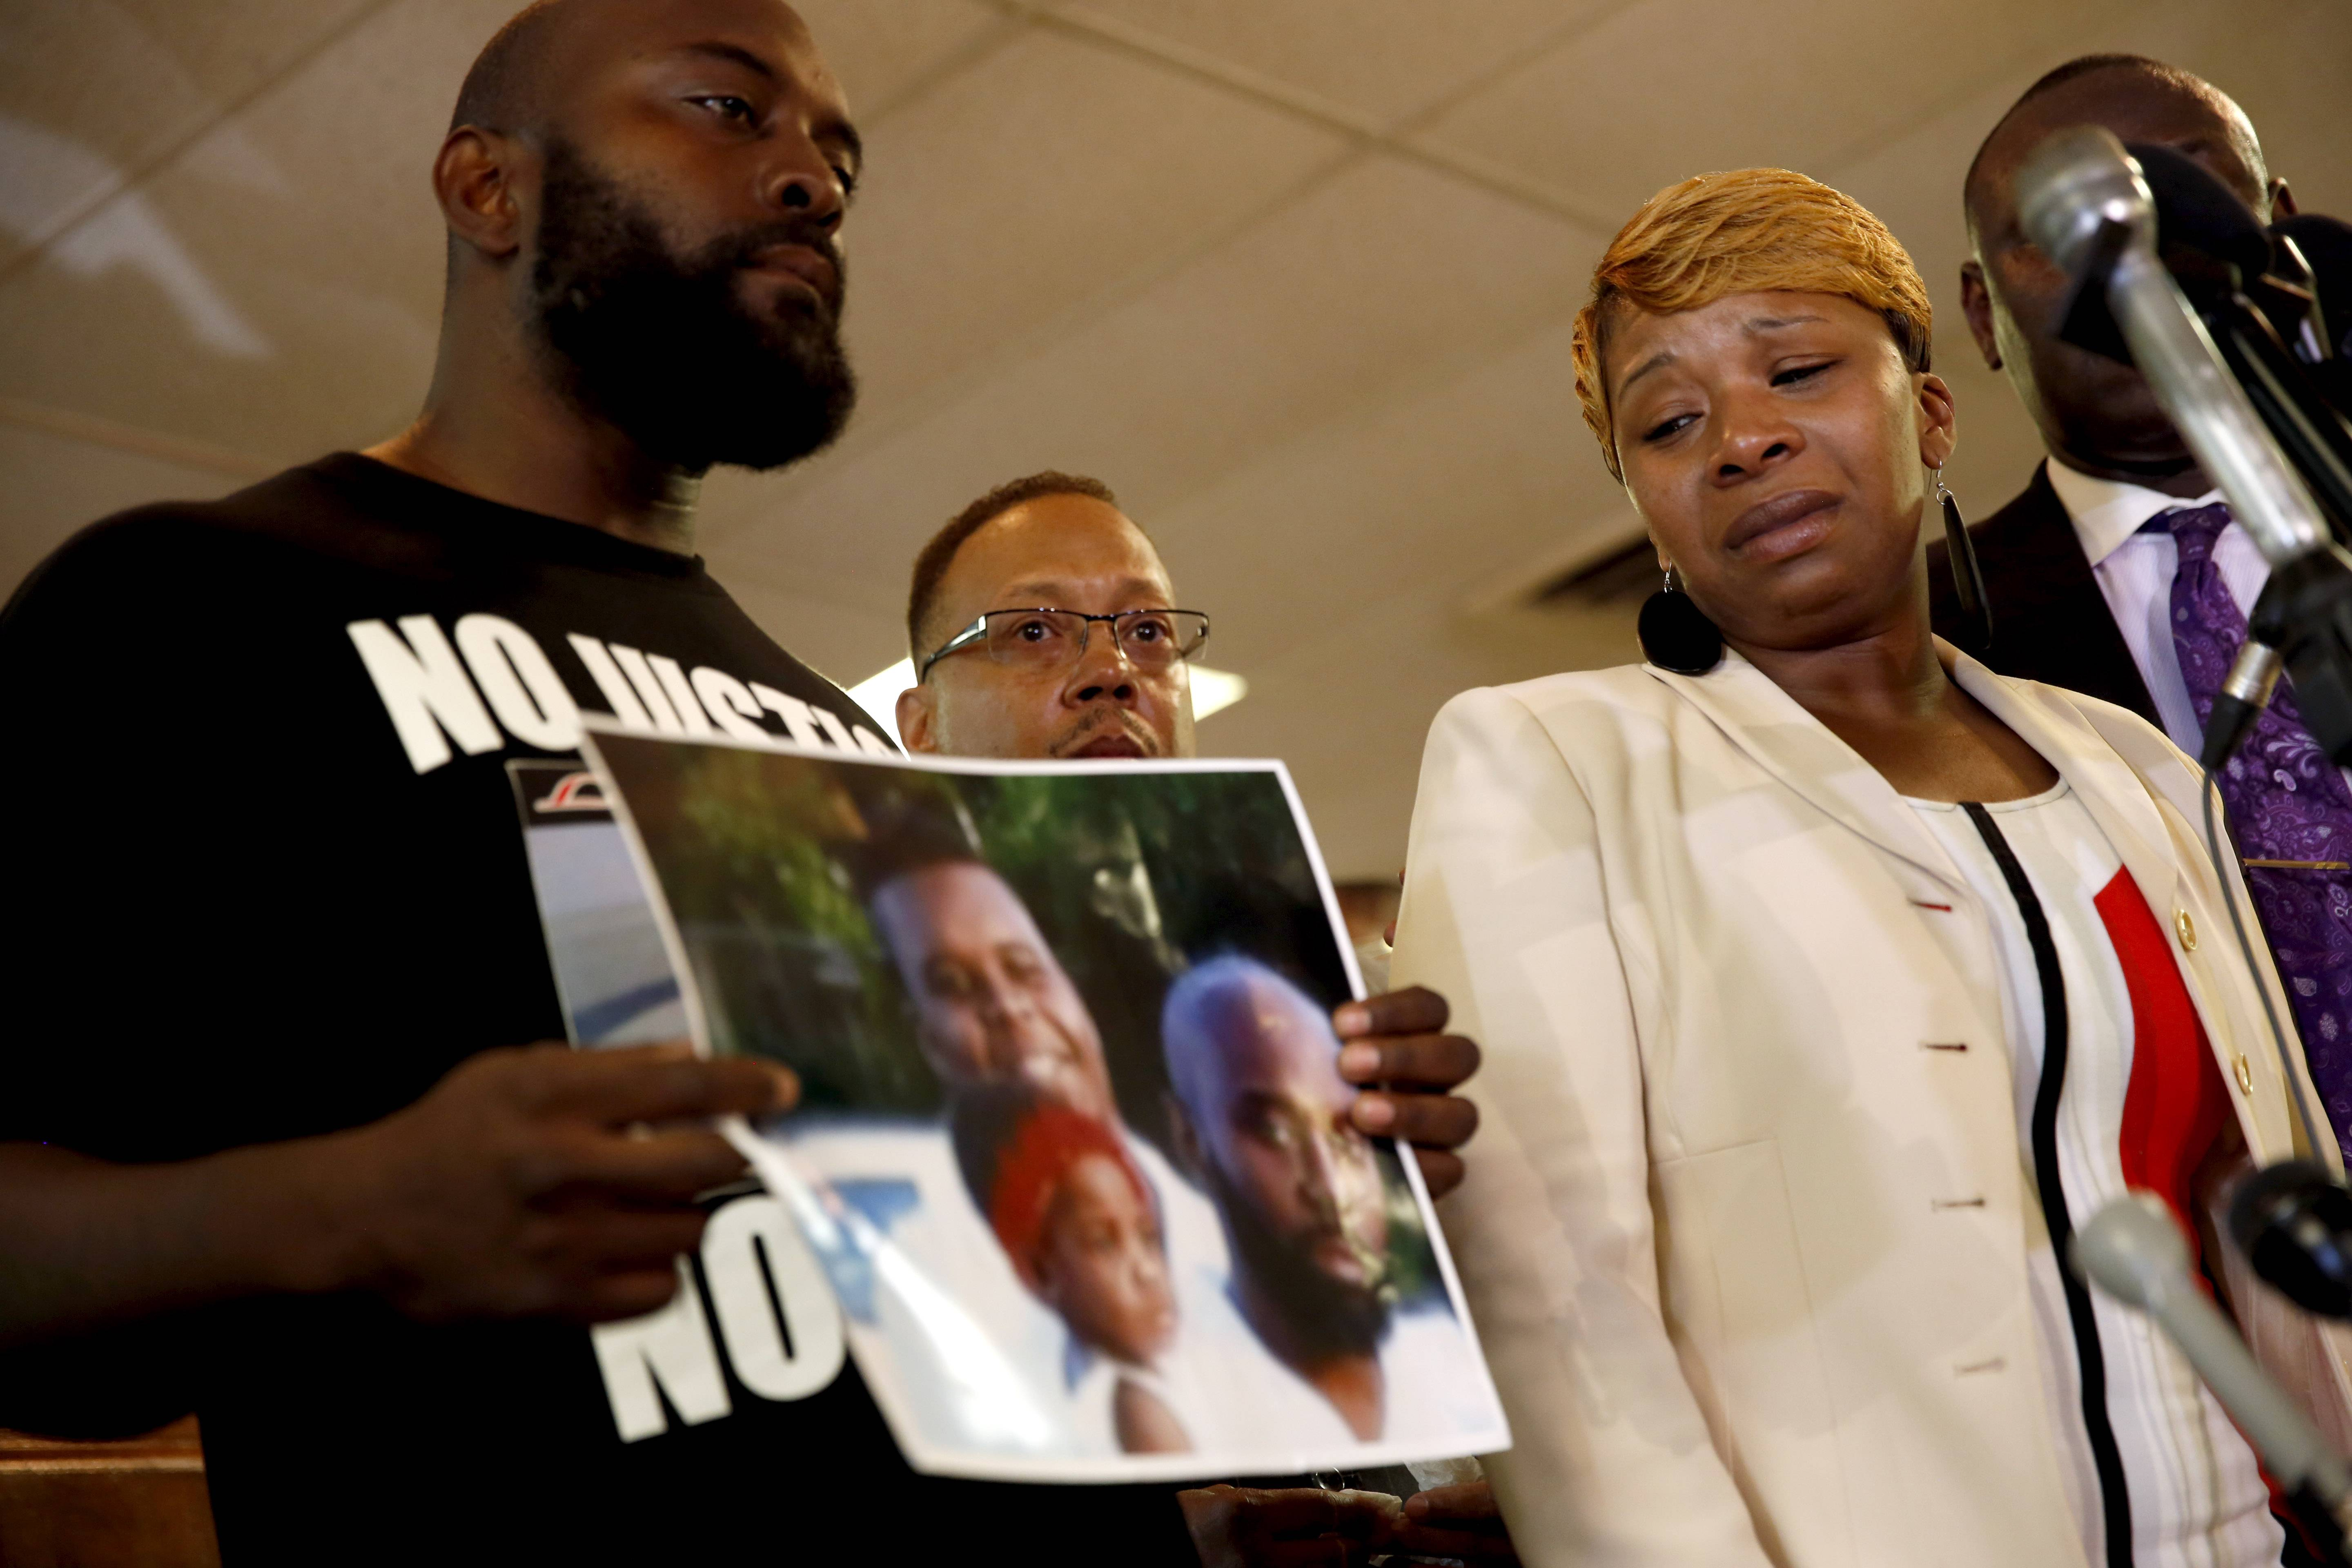 Lesley McSpadden, right, the mother of 18-year-old Michael Brown, watches as Brown's father, Michael Brown Sr., holds up a family picture of himself, his son, top left in photo, and a young child during a news conference Monday, Aug. 11, 2014, in Ferguson, Mo. Michael Brown, 18, was shot and killed in a confrontation with police in the St. Louis suburb of Ferguson, Mo, on Saturday, Aug. 9, 2014.